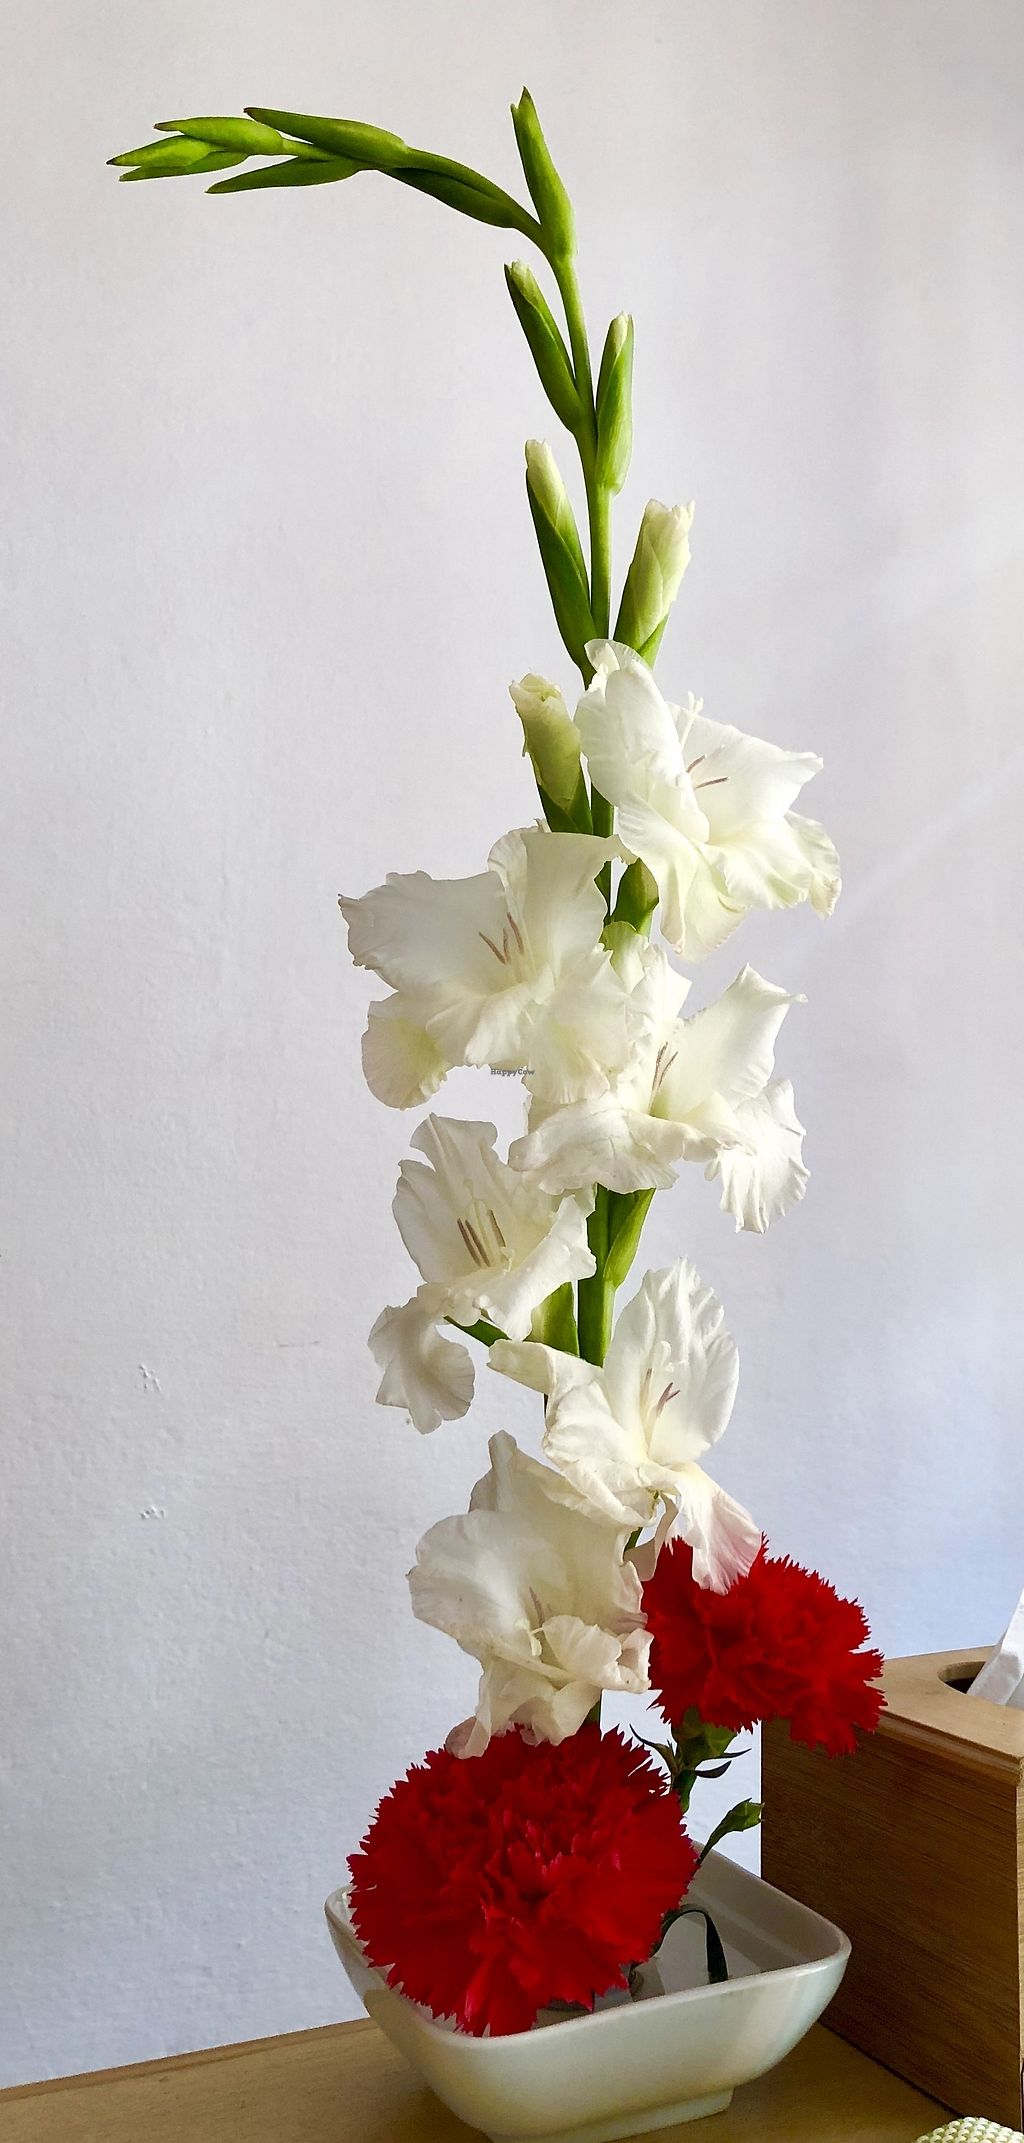 """Photo of Bliss Pure Foods  by <a href=""""/members/profile/KathrynSunantha"""">KathrynSunantha</a> <br/>Bliss flowers arrangement  <br/> March 5, 2018  - <a href='/contact/abuse/image/70969/367055'>Report</a>"""